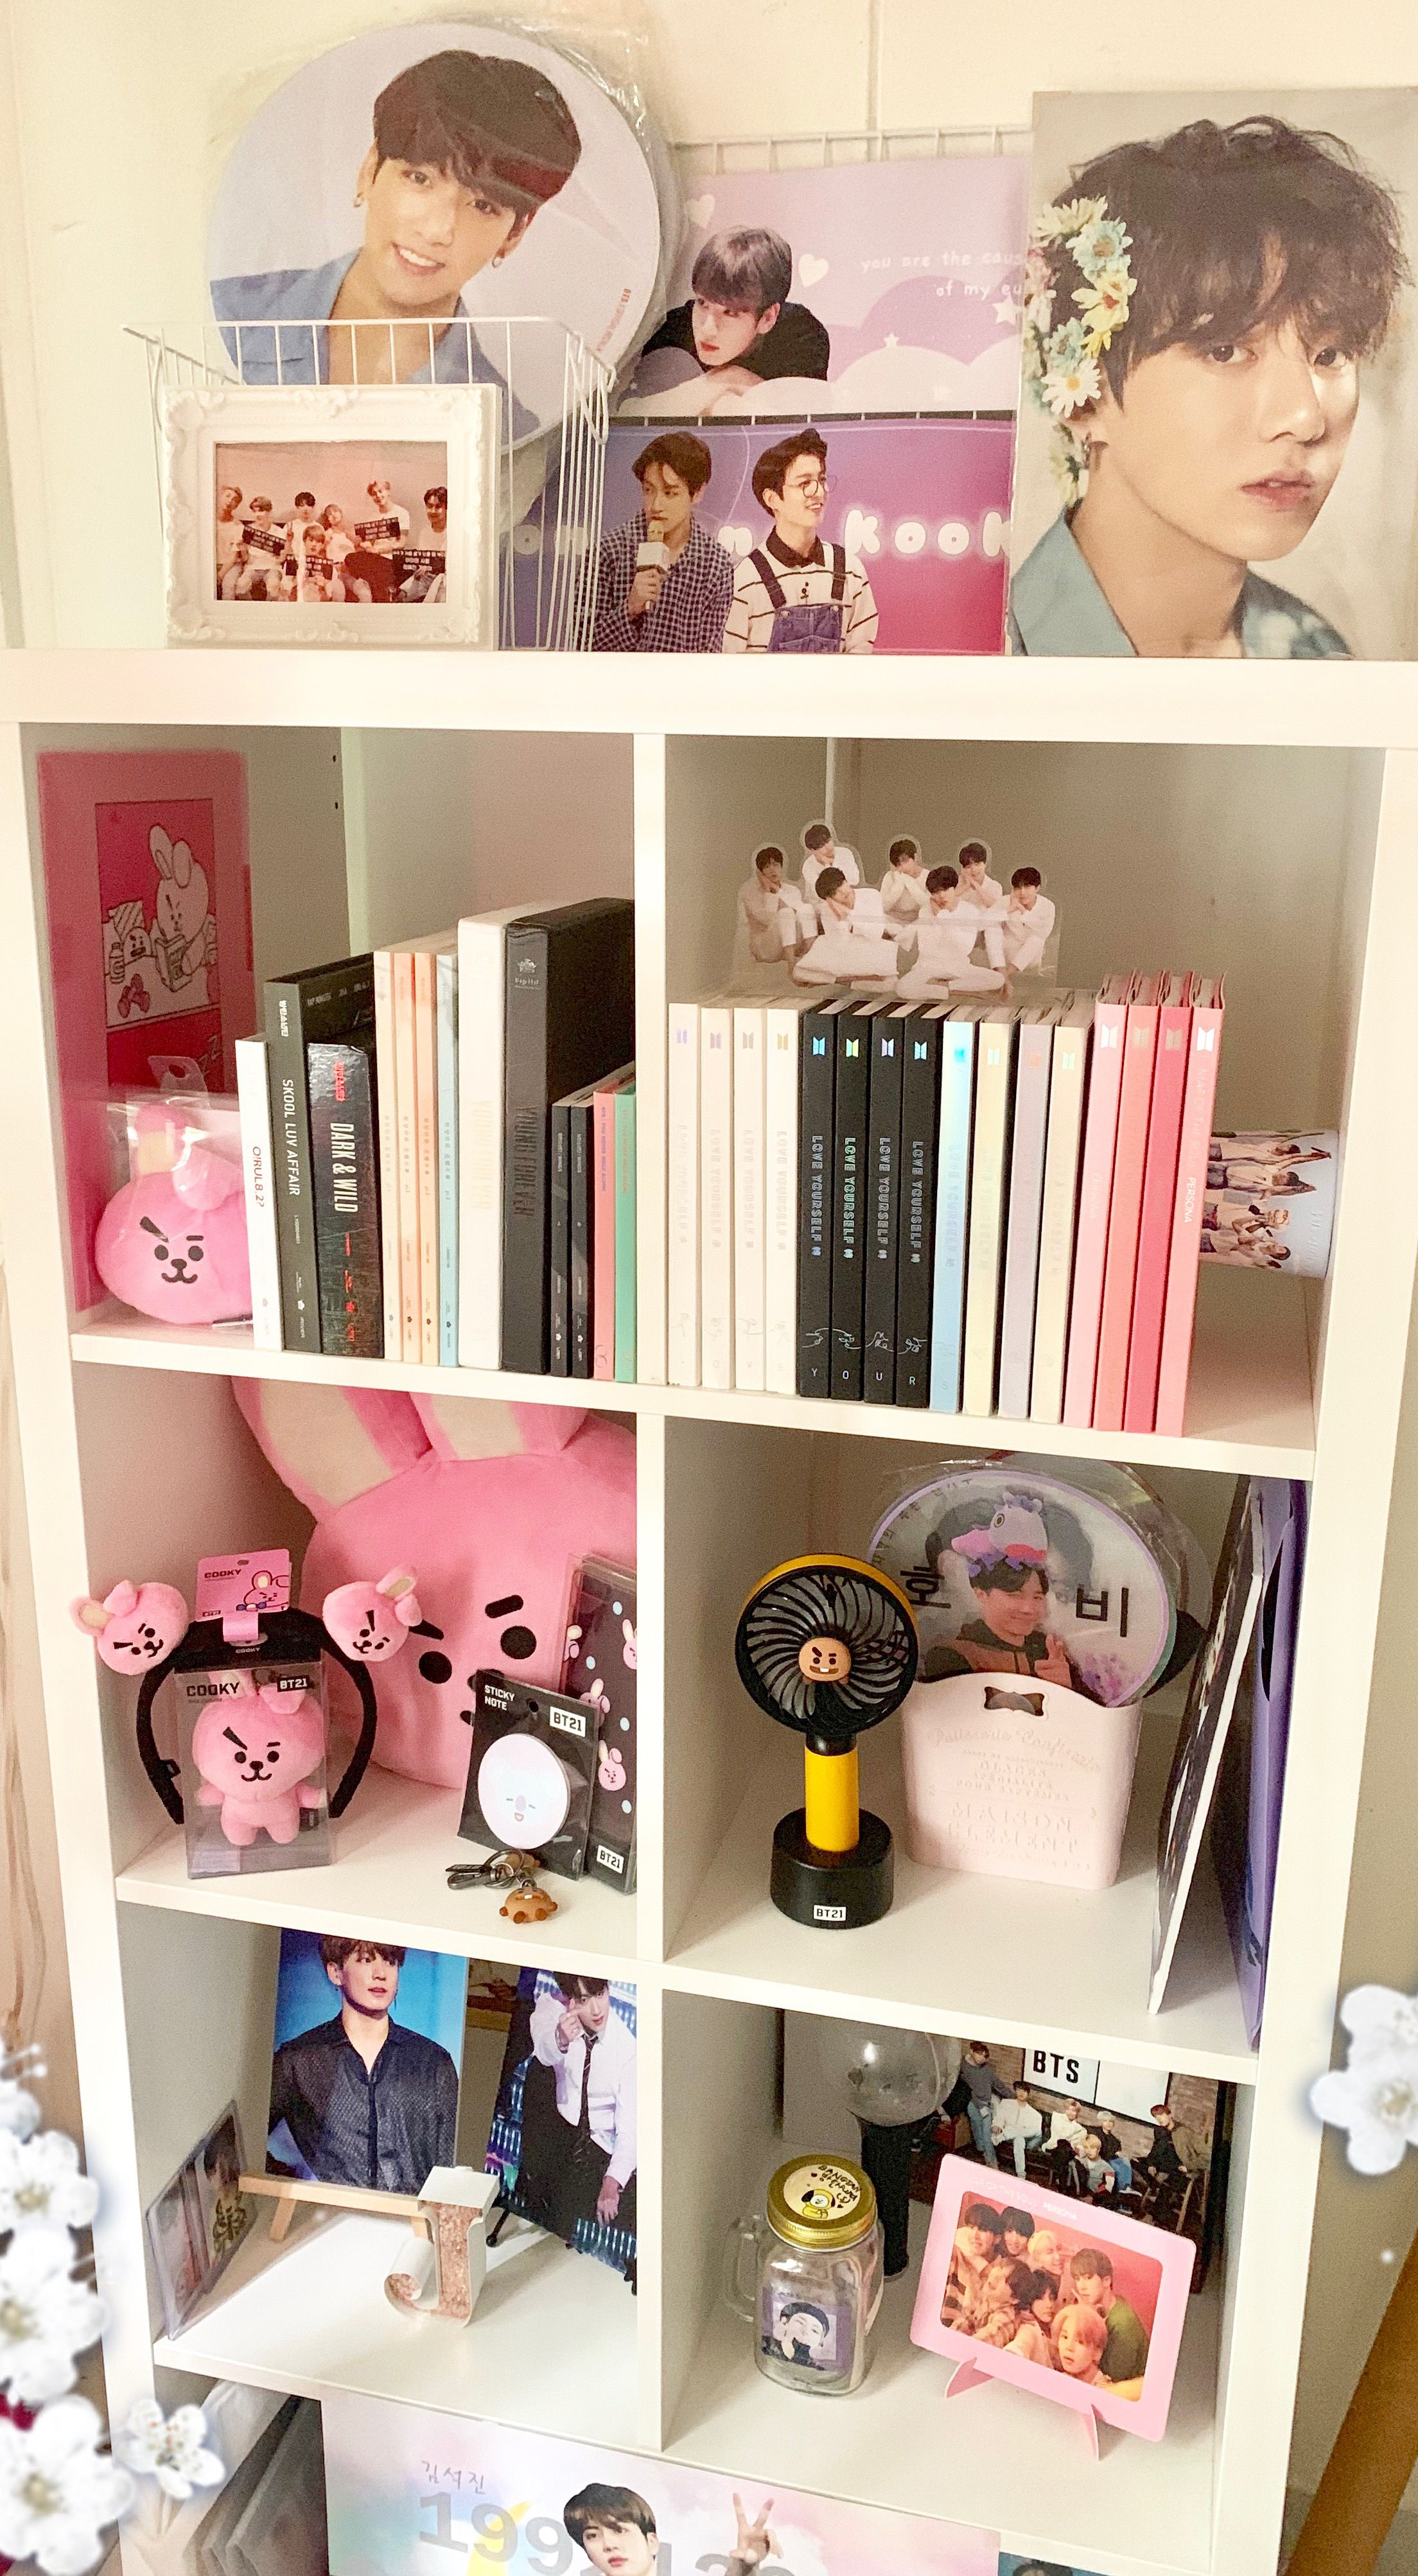 Pin by ??? on bts merch/albums ᴗ ♡ * | Army room, Army ... on Room Decor Bts id=85470